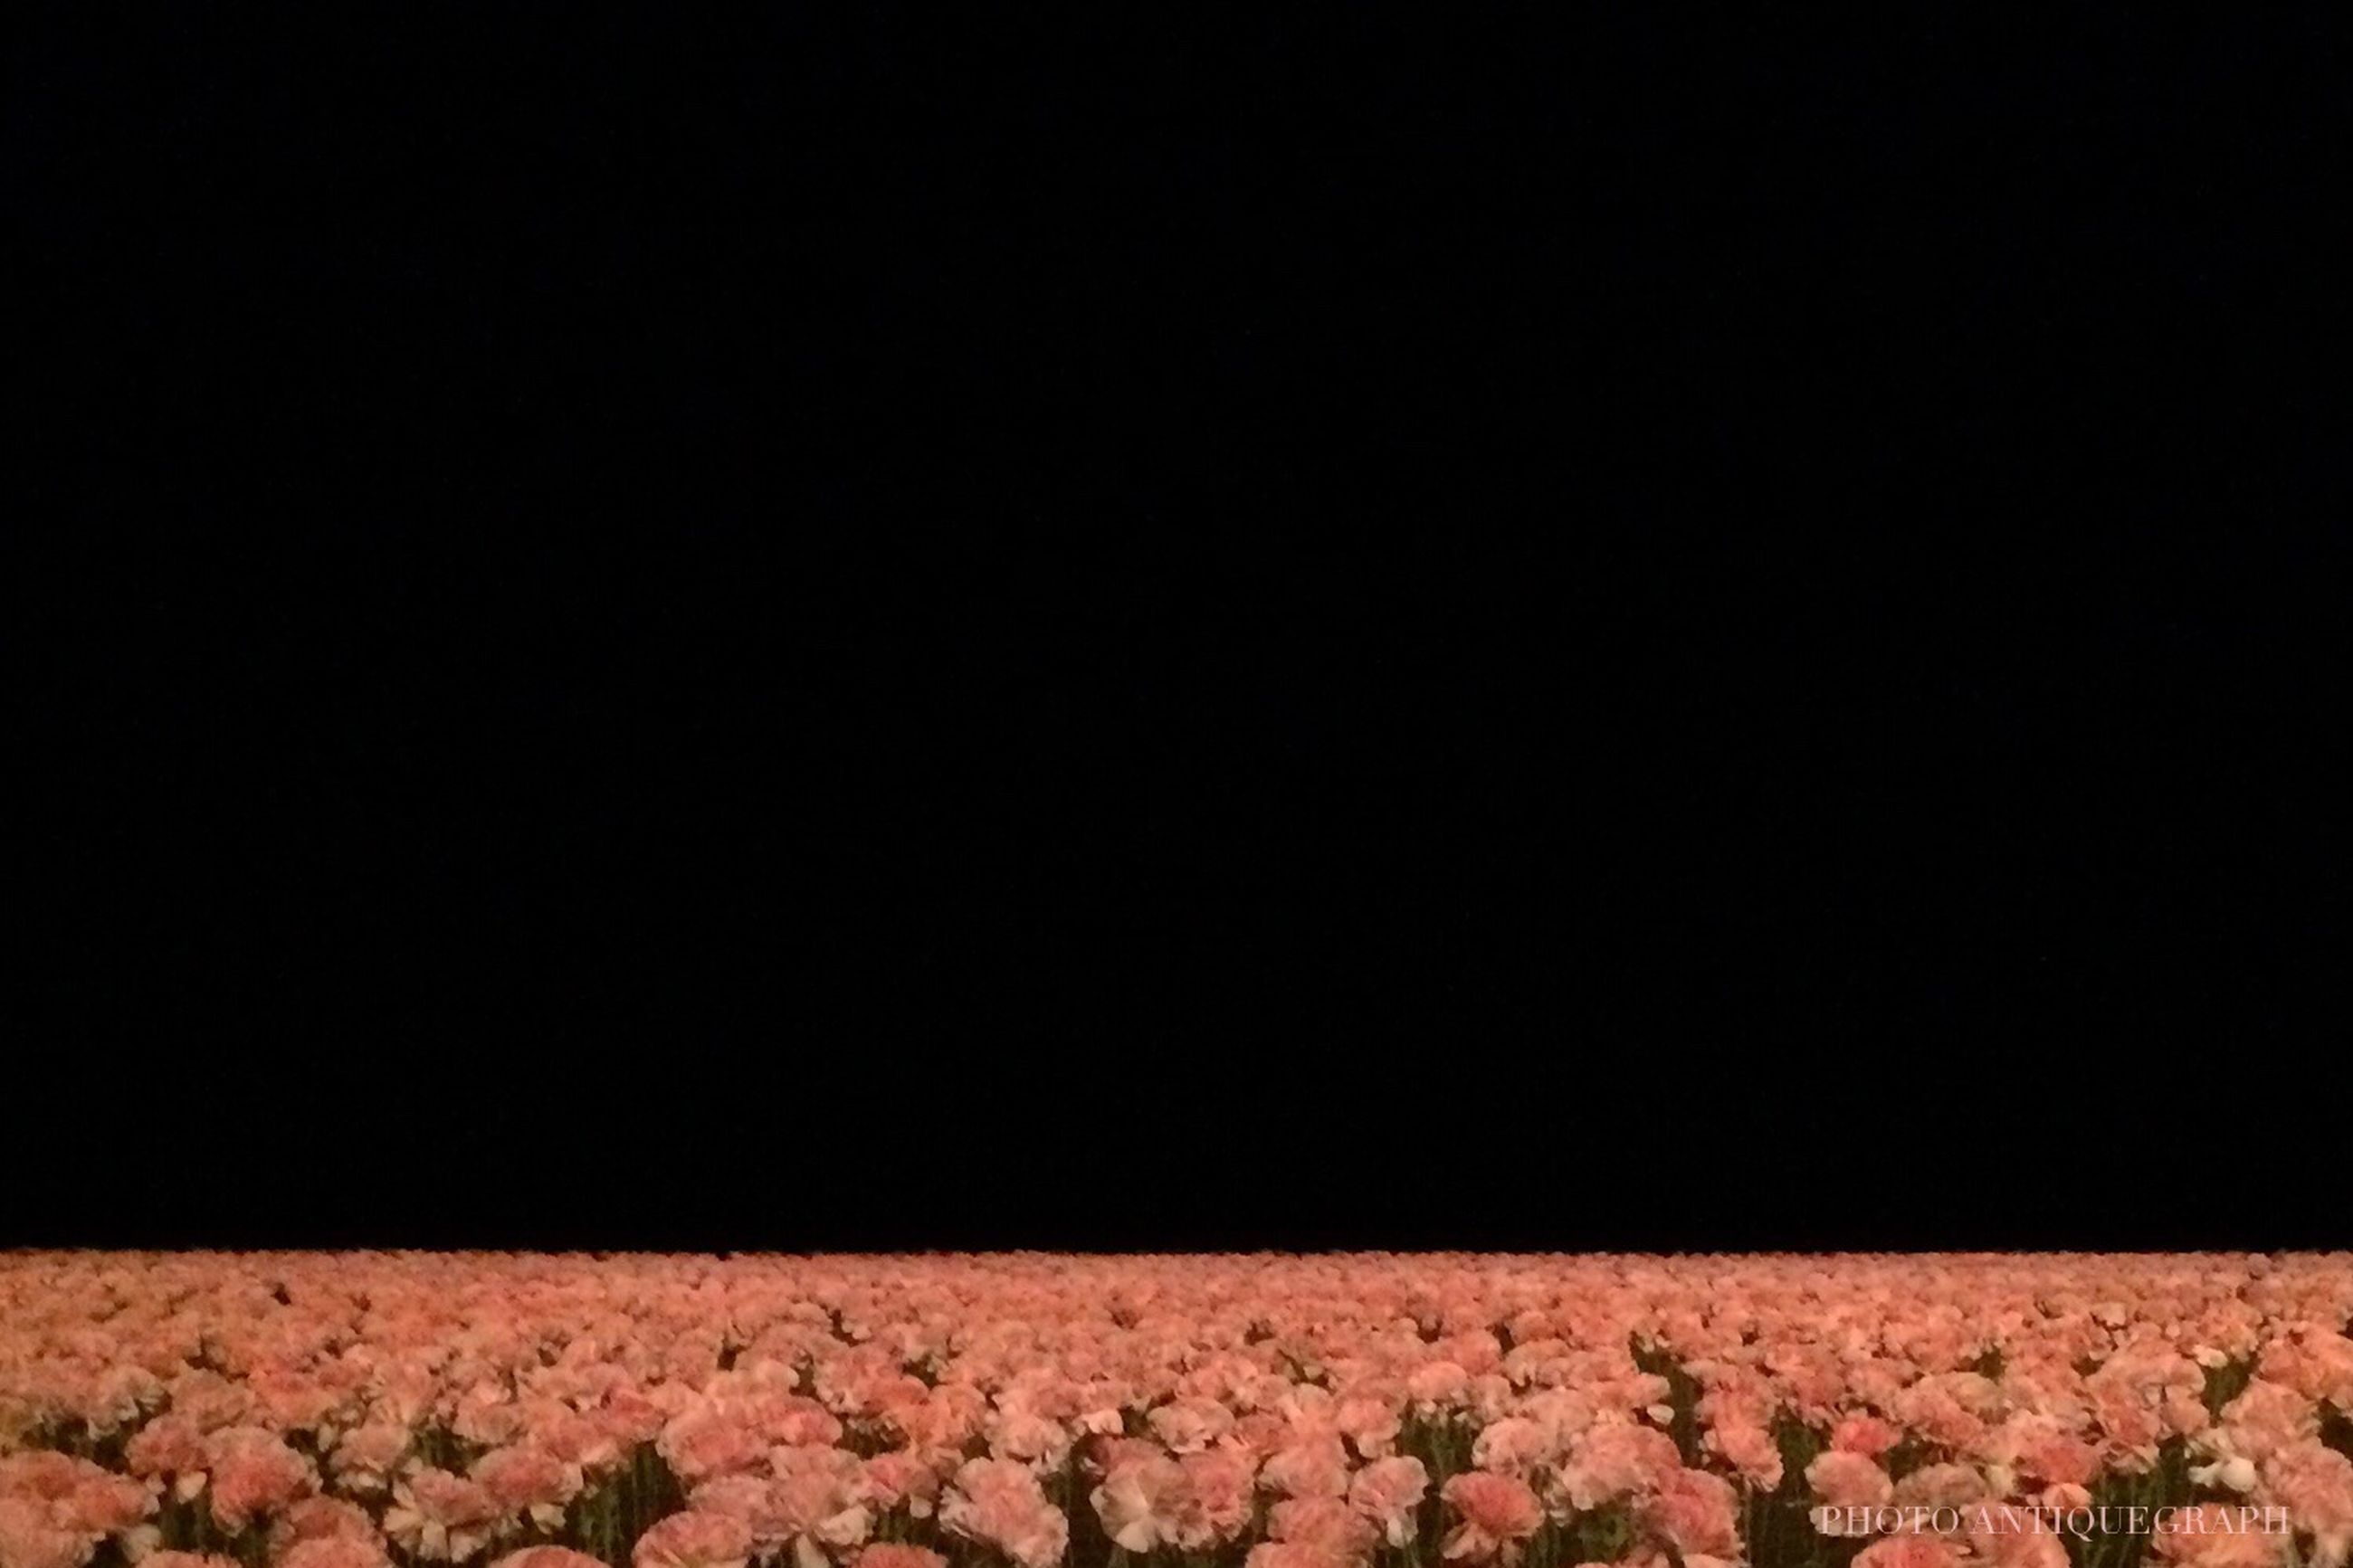 copy space, flower, nature, red, no people, clear sky, growth, black background, freshness, outdoors, flower head